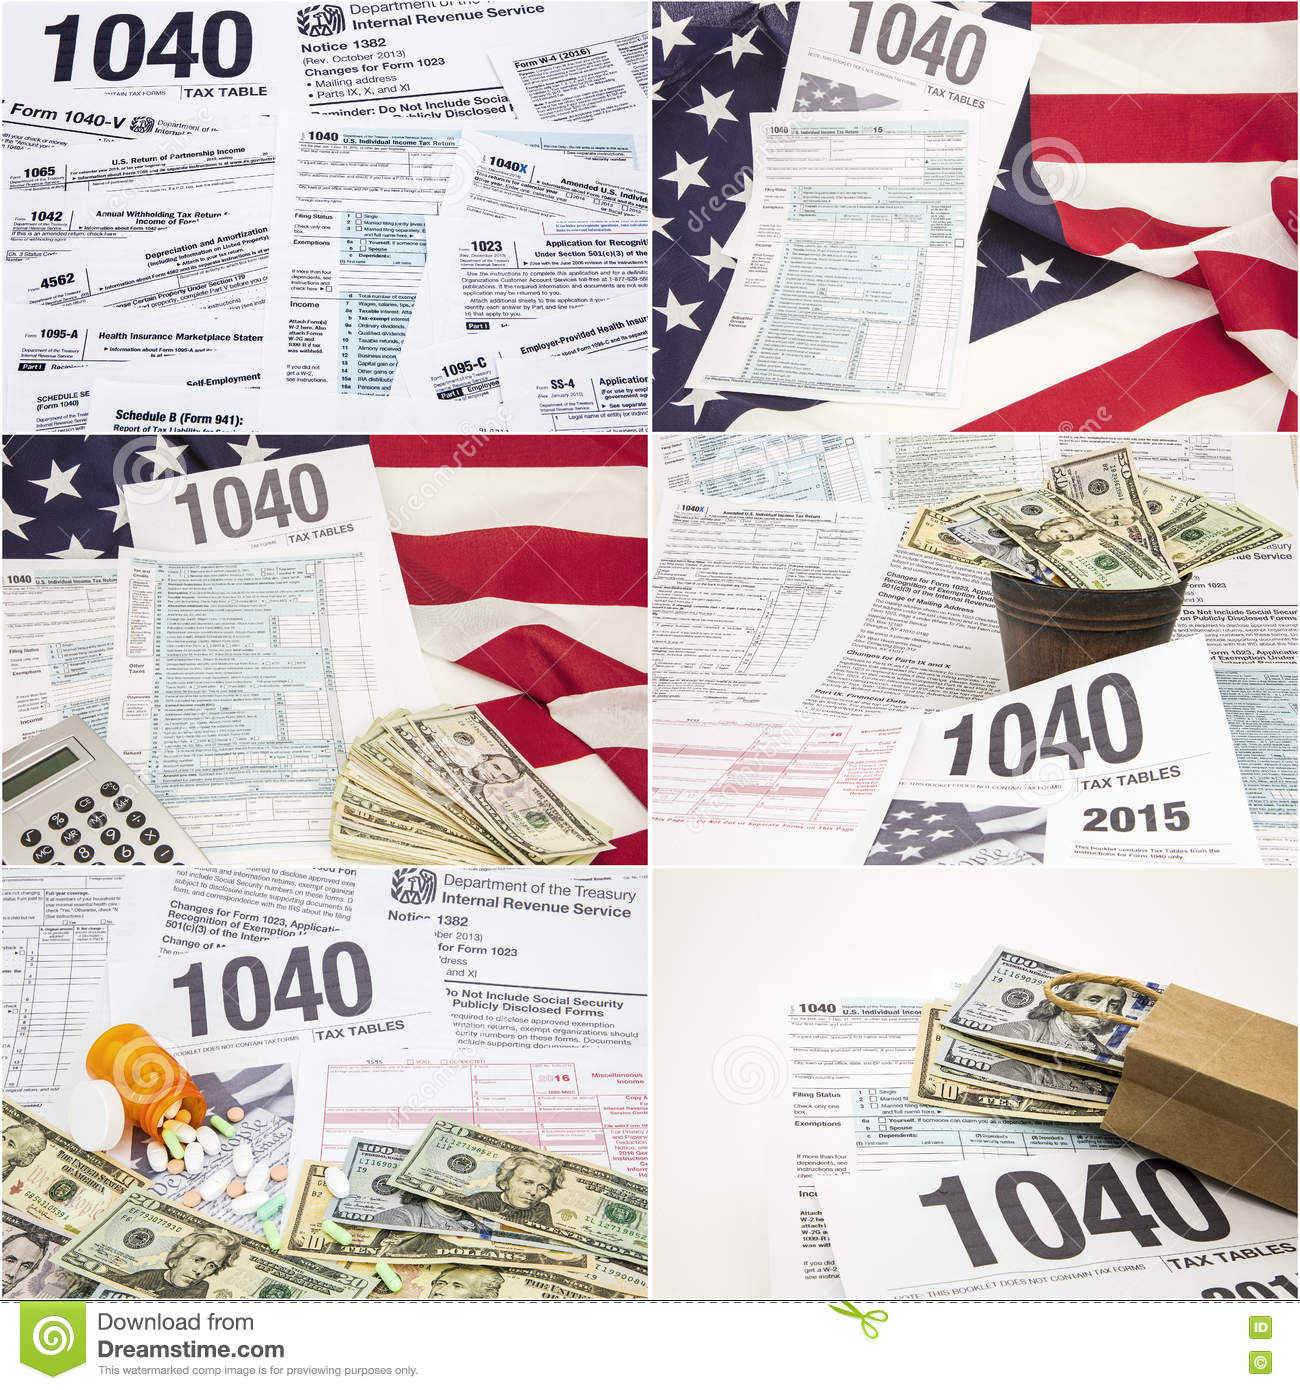 Form 1040 IRS Income Tax American Flag Drugs Money Collage Stock ...